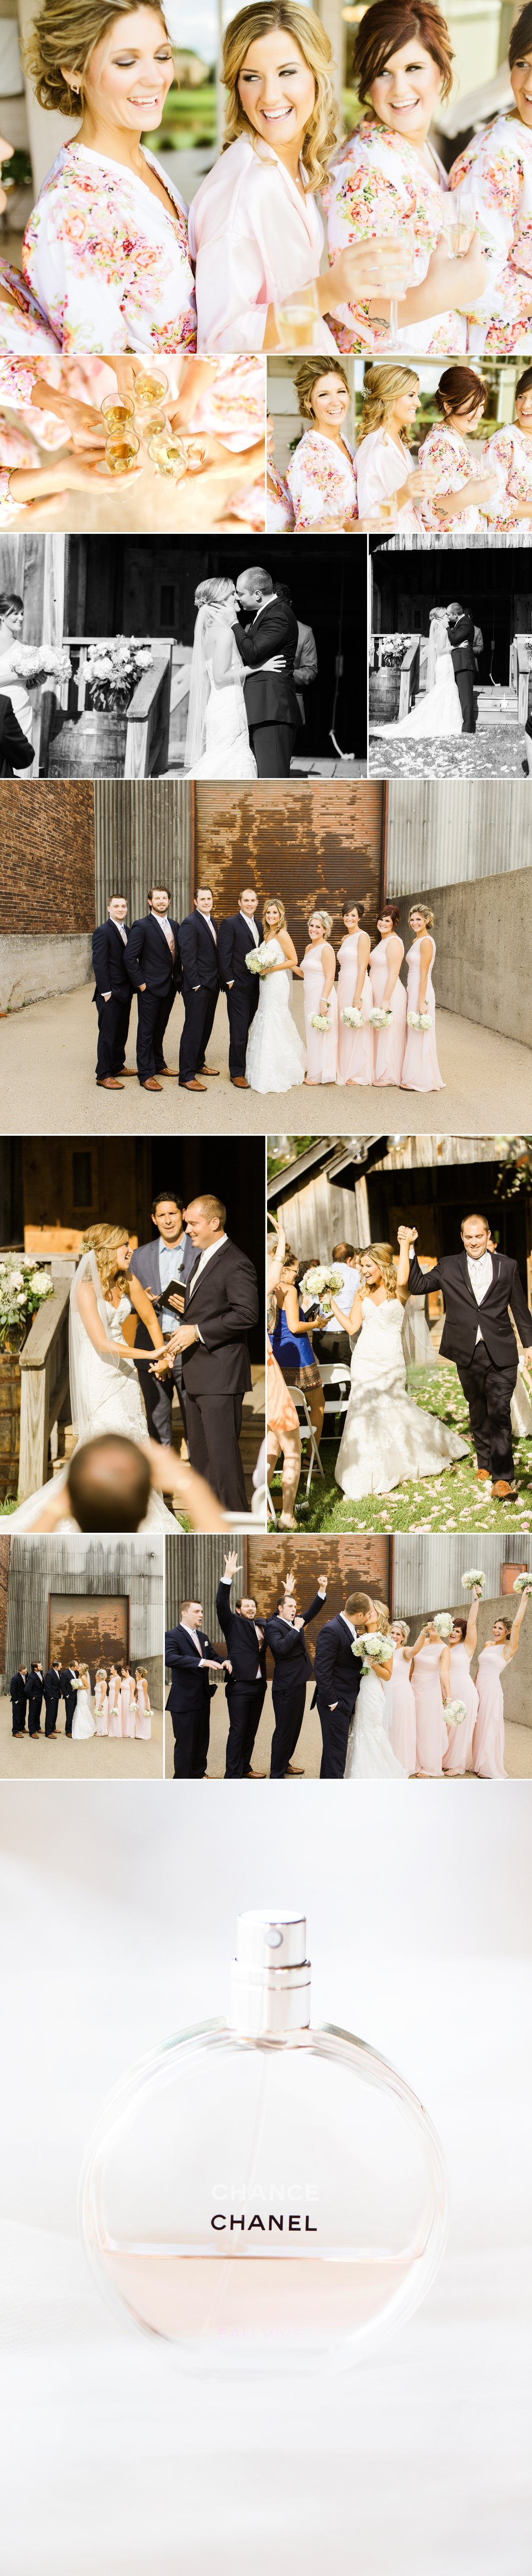 Mr. and Mrs. Flower Collage 2.jpg